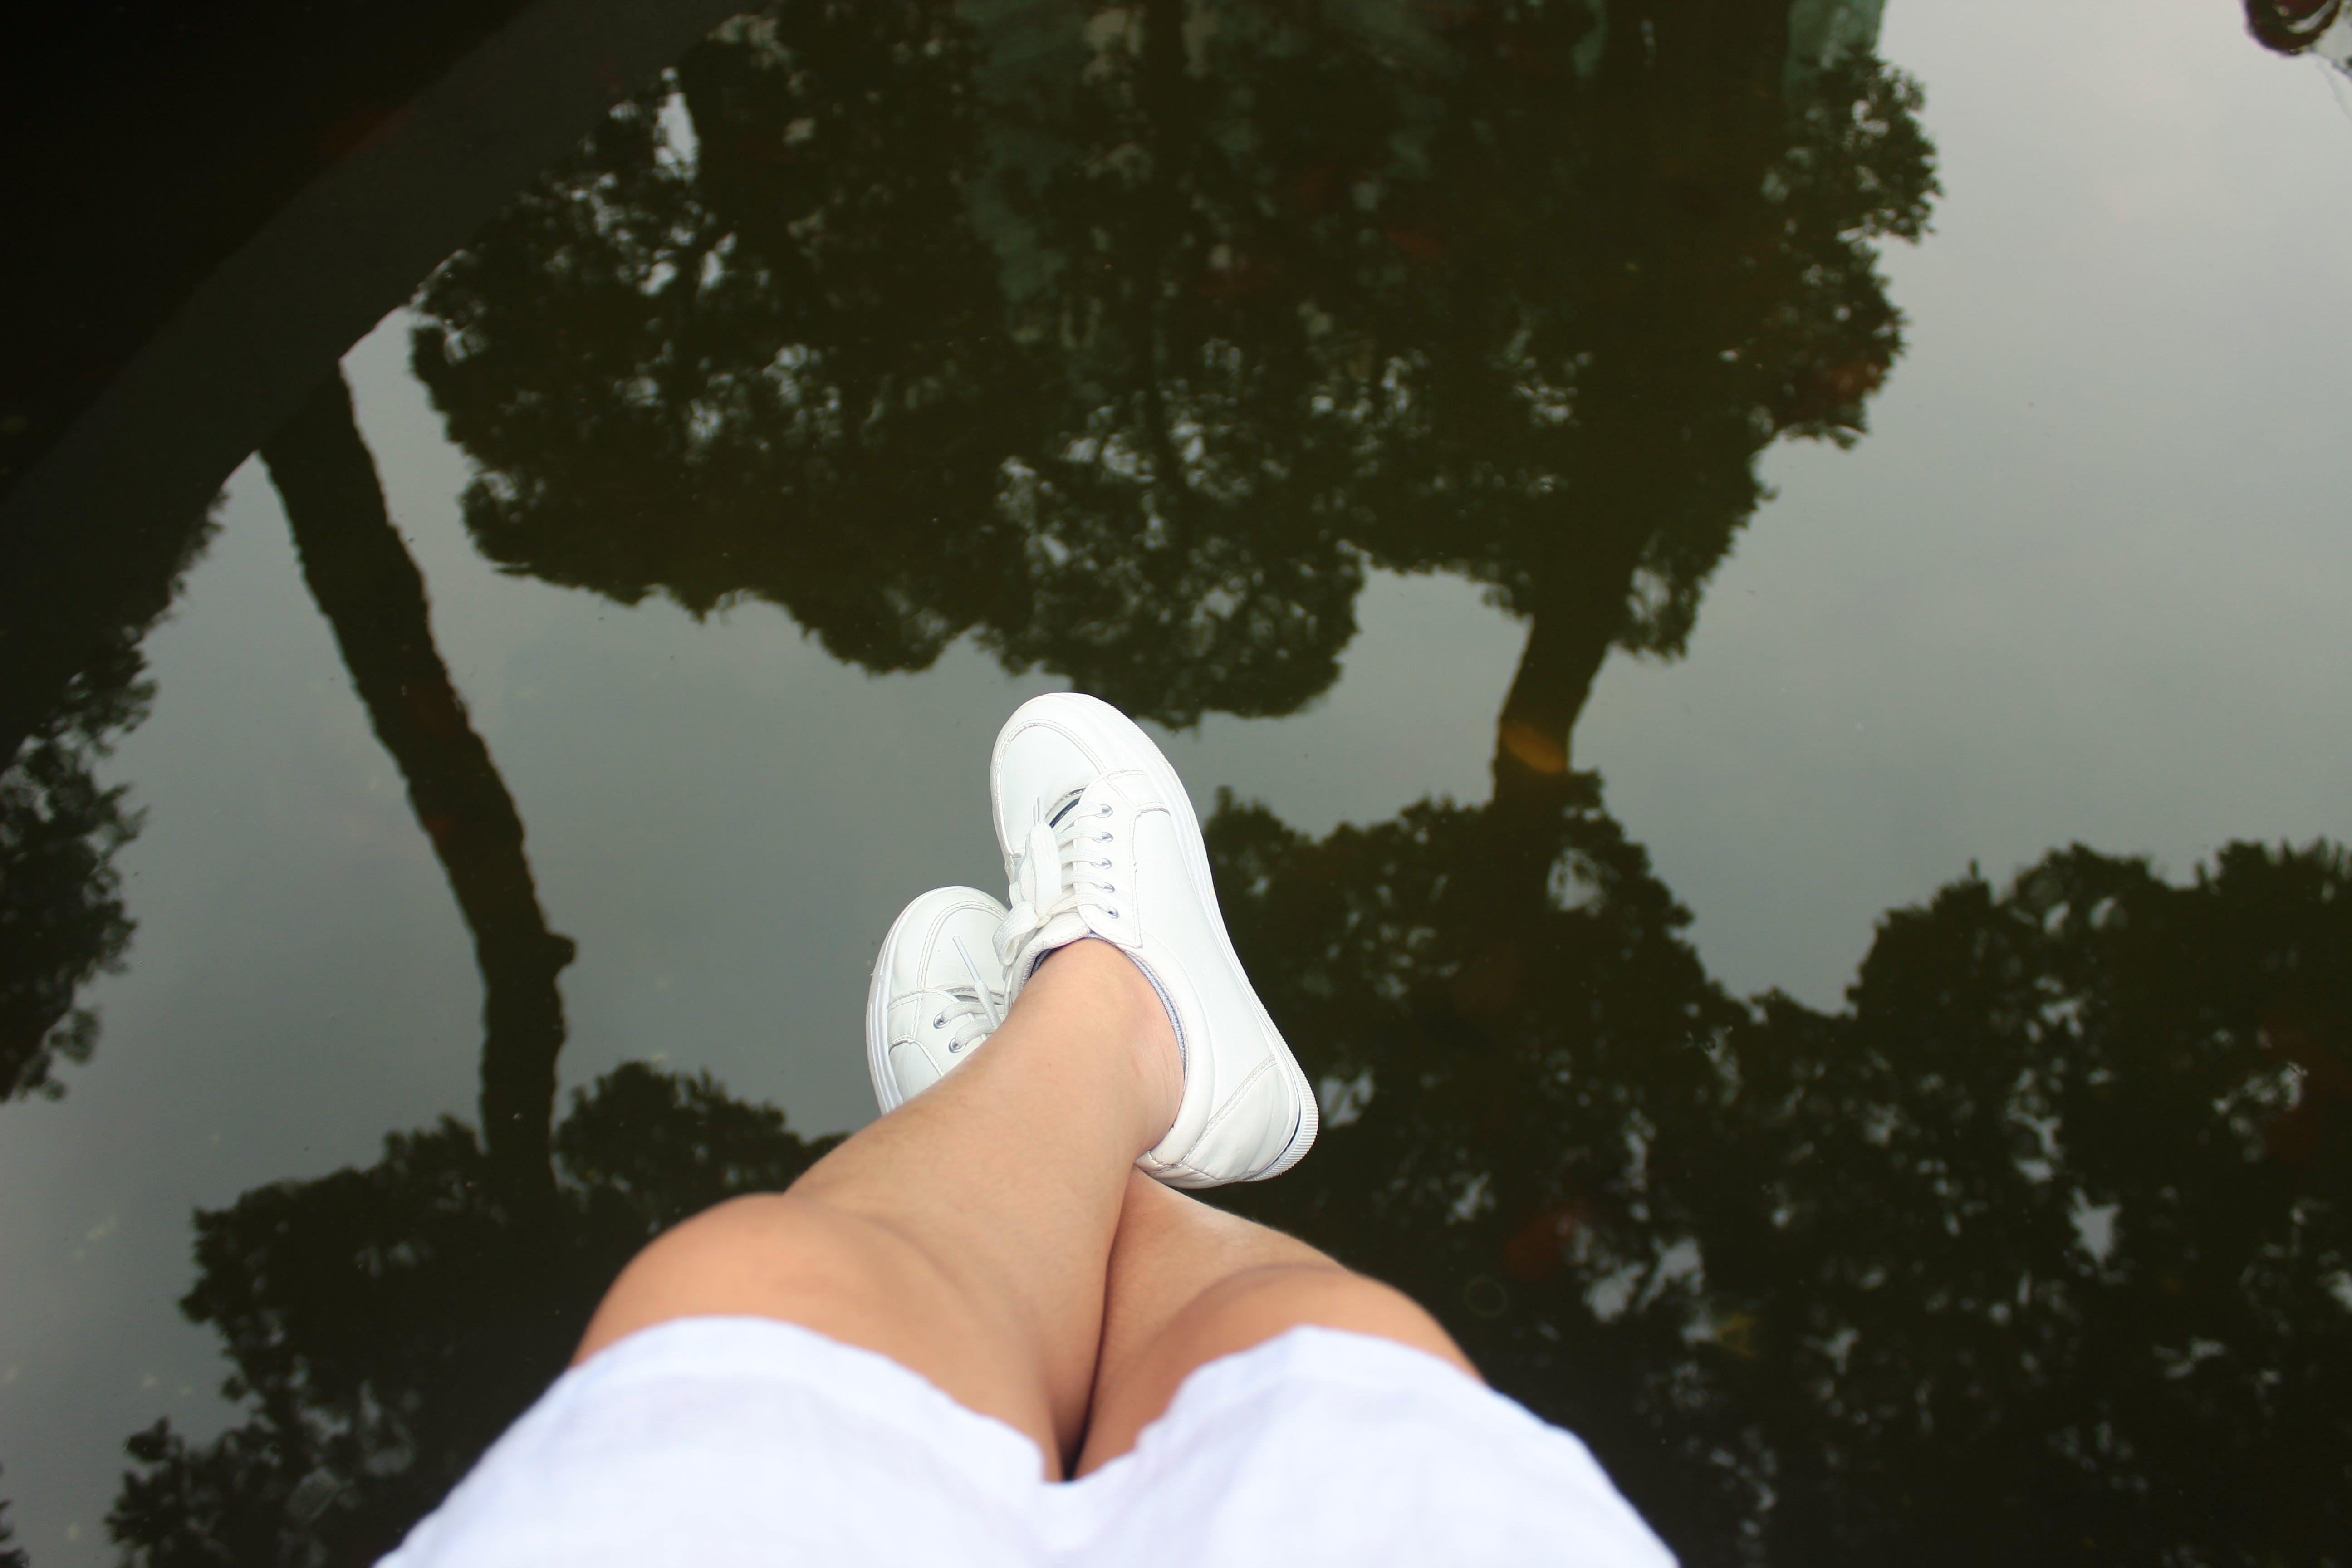 Person's Feet Above Body of Water